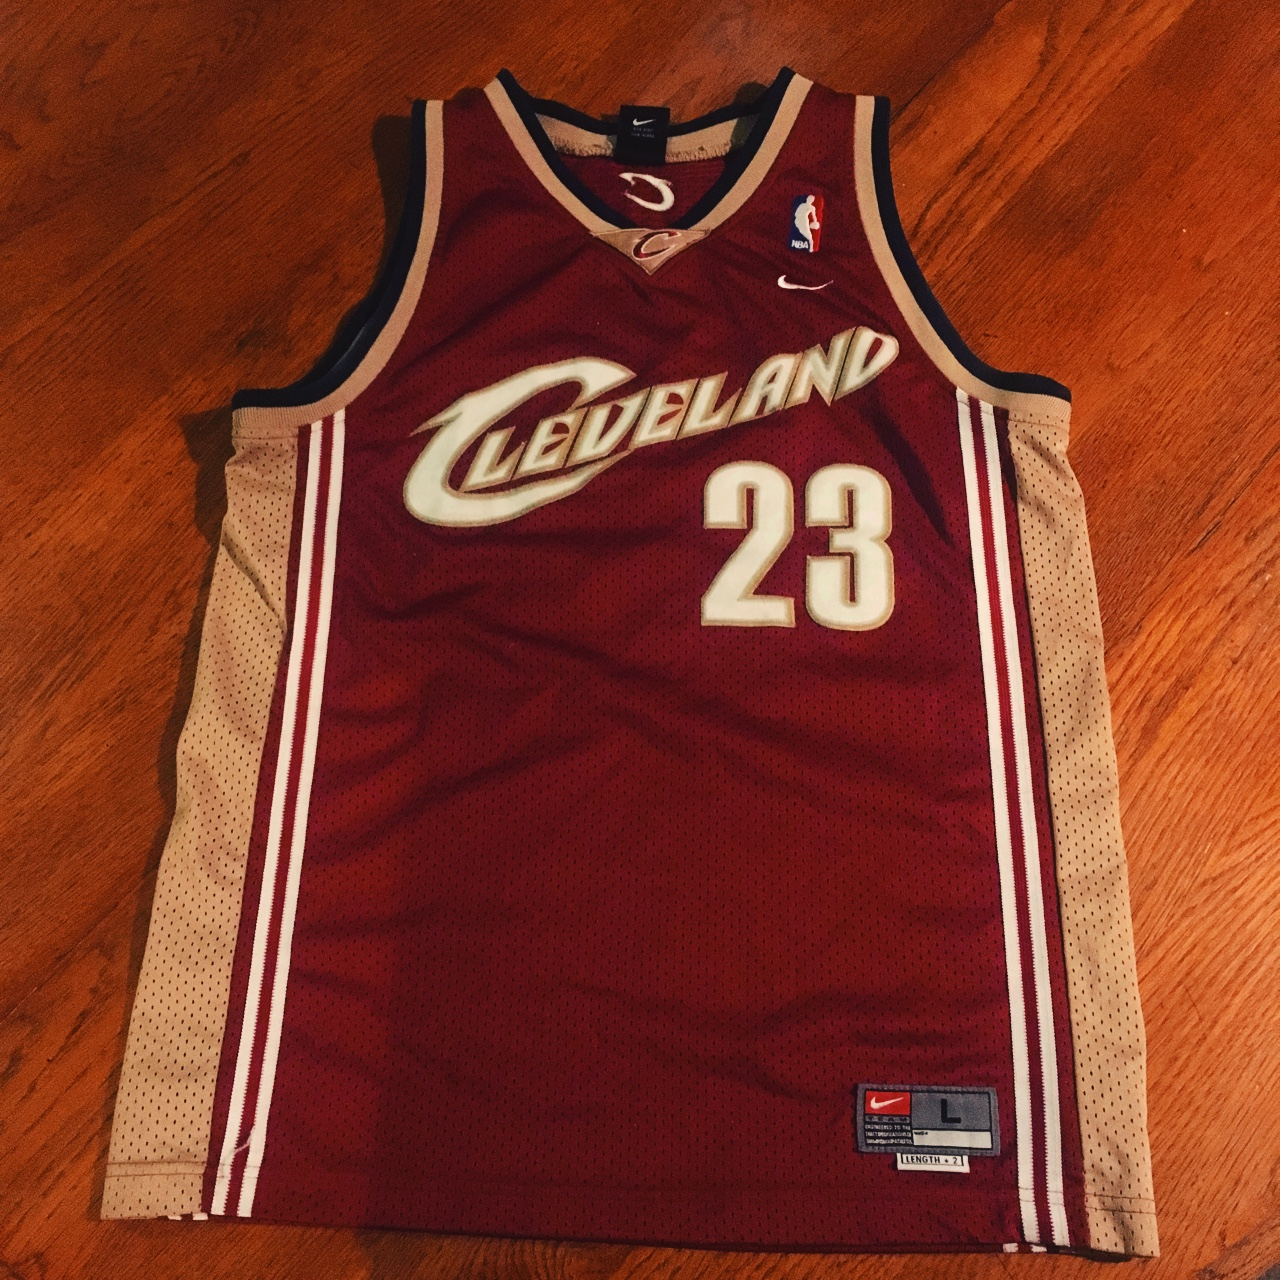 free shipping 7ef82 b525c Classic Nike Lebron James Cavs jersey, size listed... - Depop